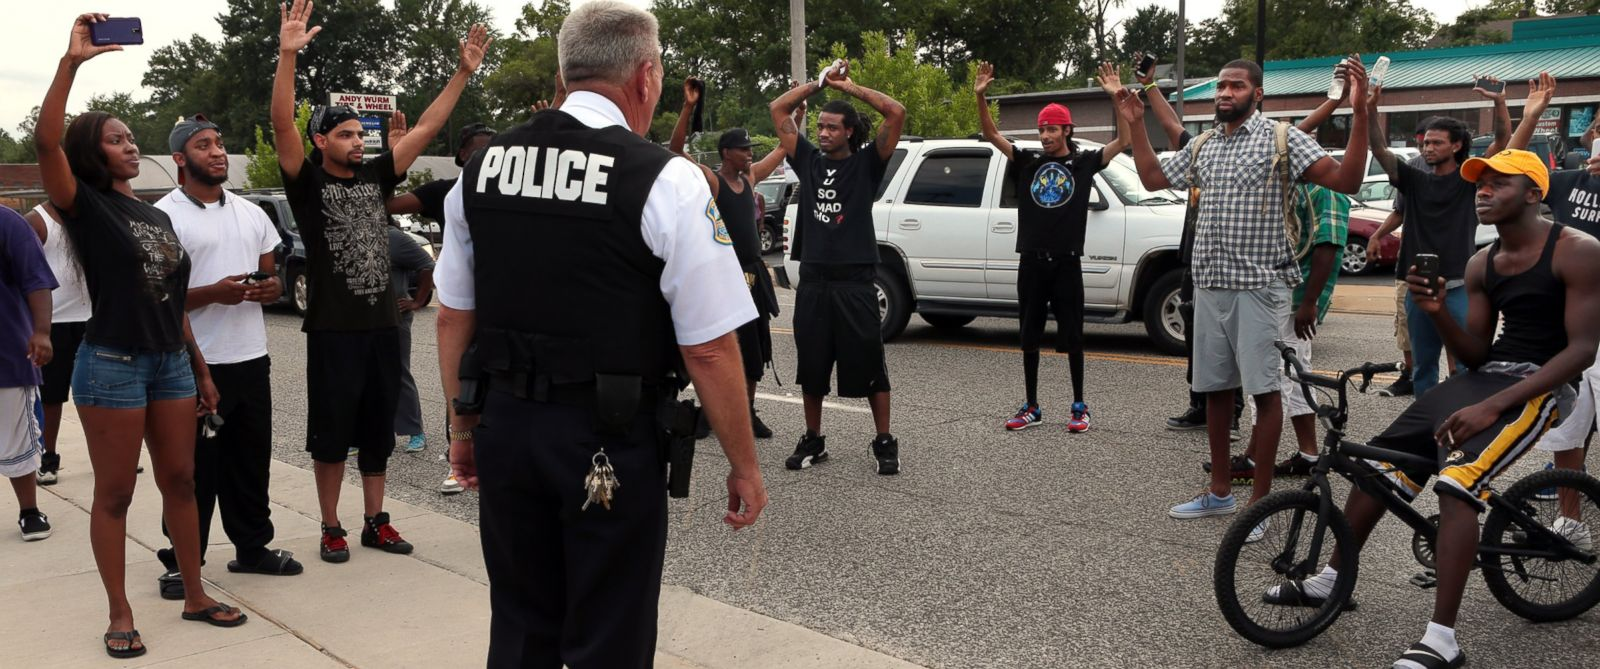 PHOTO: Protestors blocking Florissant Road raise their hands after being approached by police officers who asked them to stop blocking the street in front of the Ferguson police department on Aug. 10, 2014.